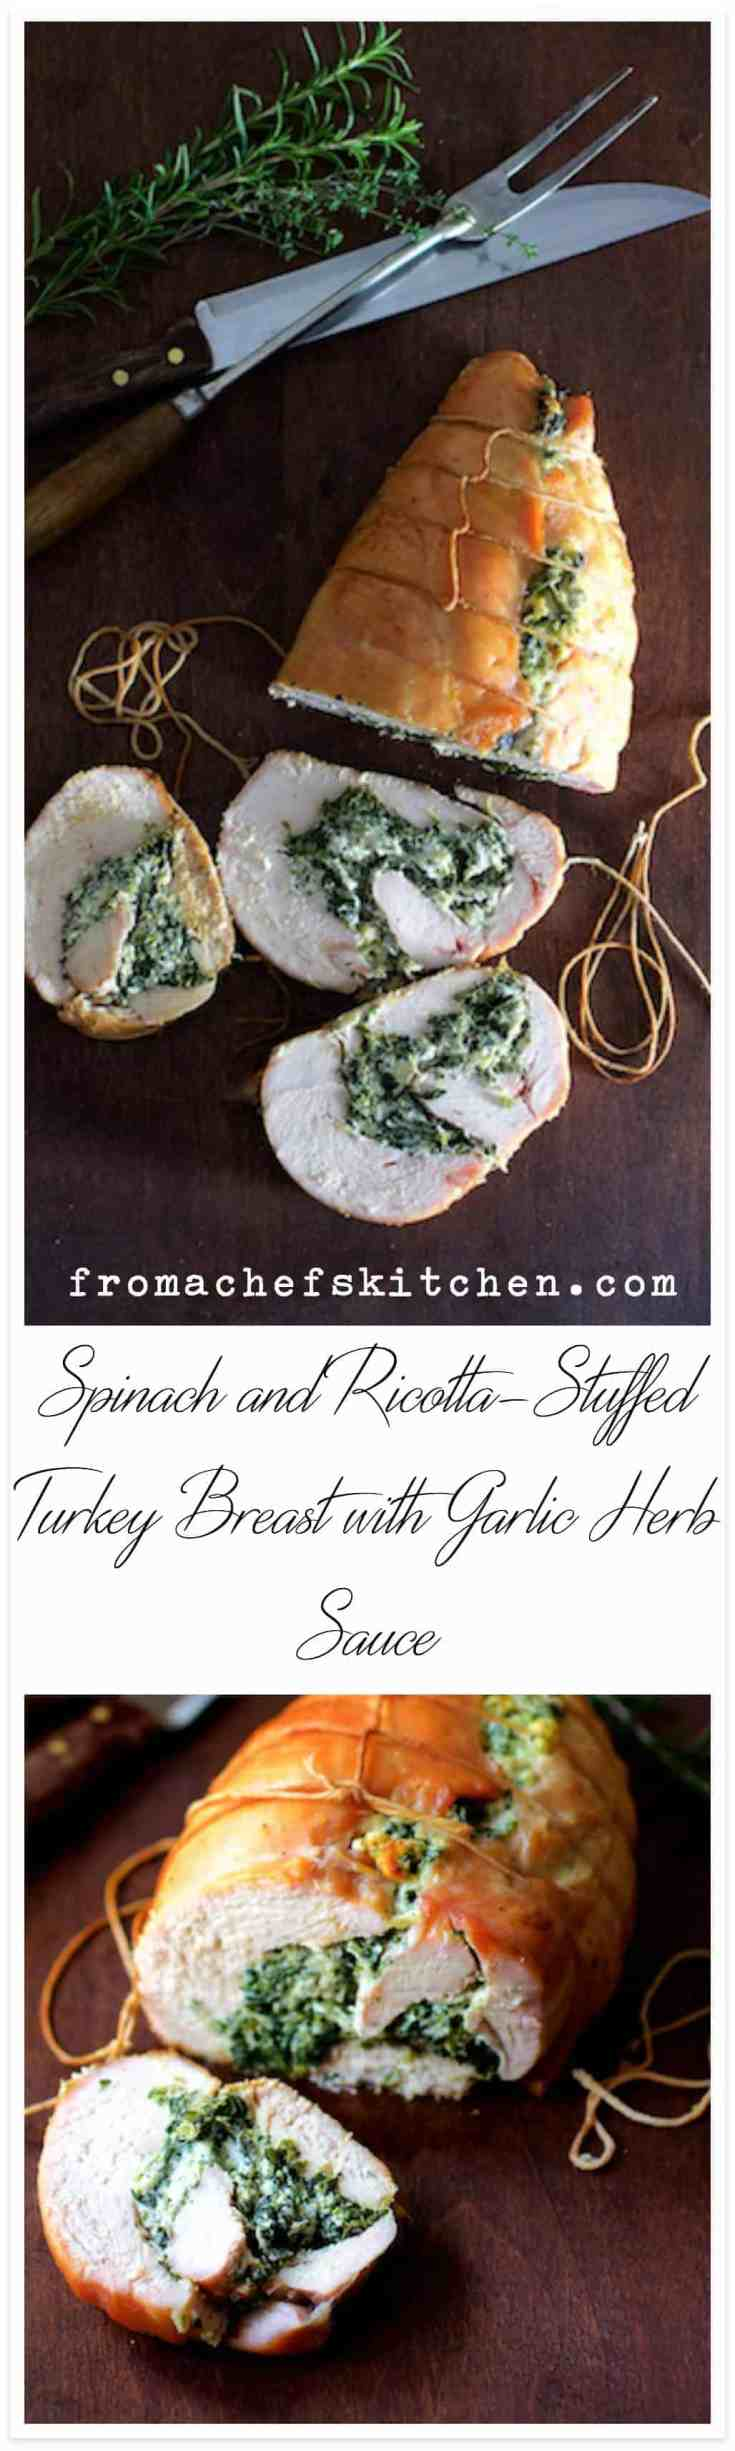 Spinach and Ricotta Stuffed Turkey Breast with Garlic Herb Sauce is perfect for a small-scale Thanksgiving or a nice family dinner any time of year! #turkey #turkeybreast #stuffedturkeybreast #Thanksgiving #Thanksgivingrecipes #Christmas #Christmasrecipes